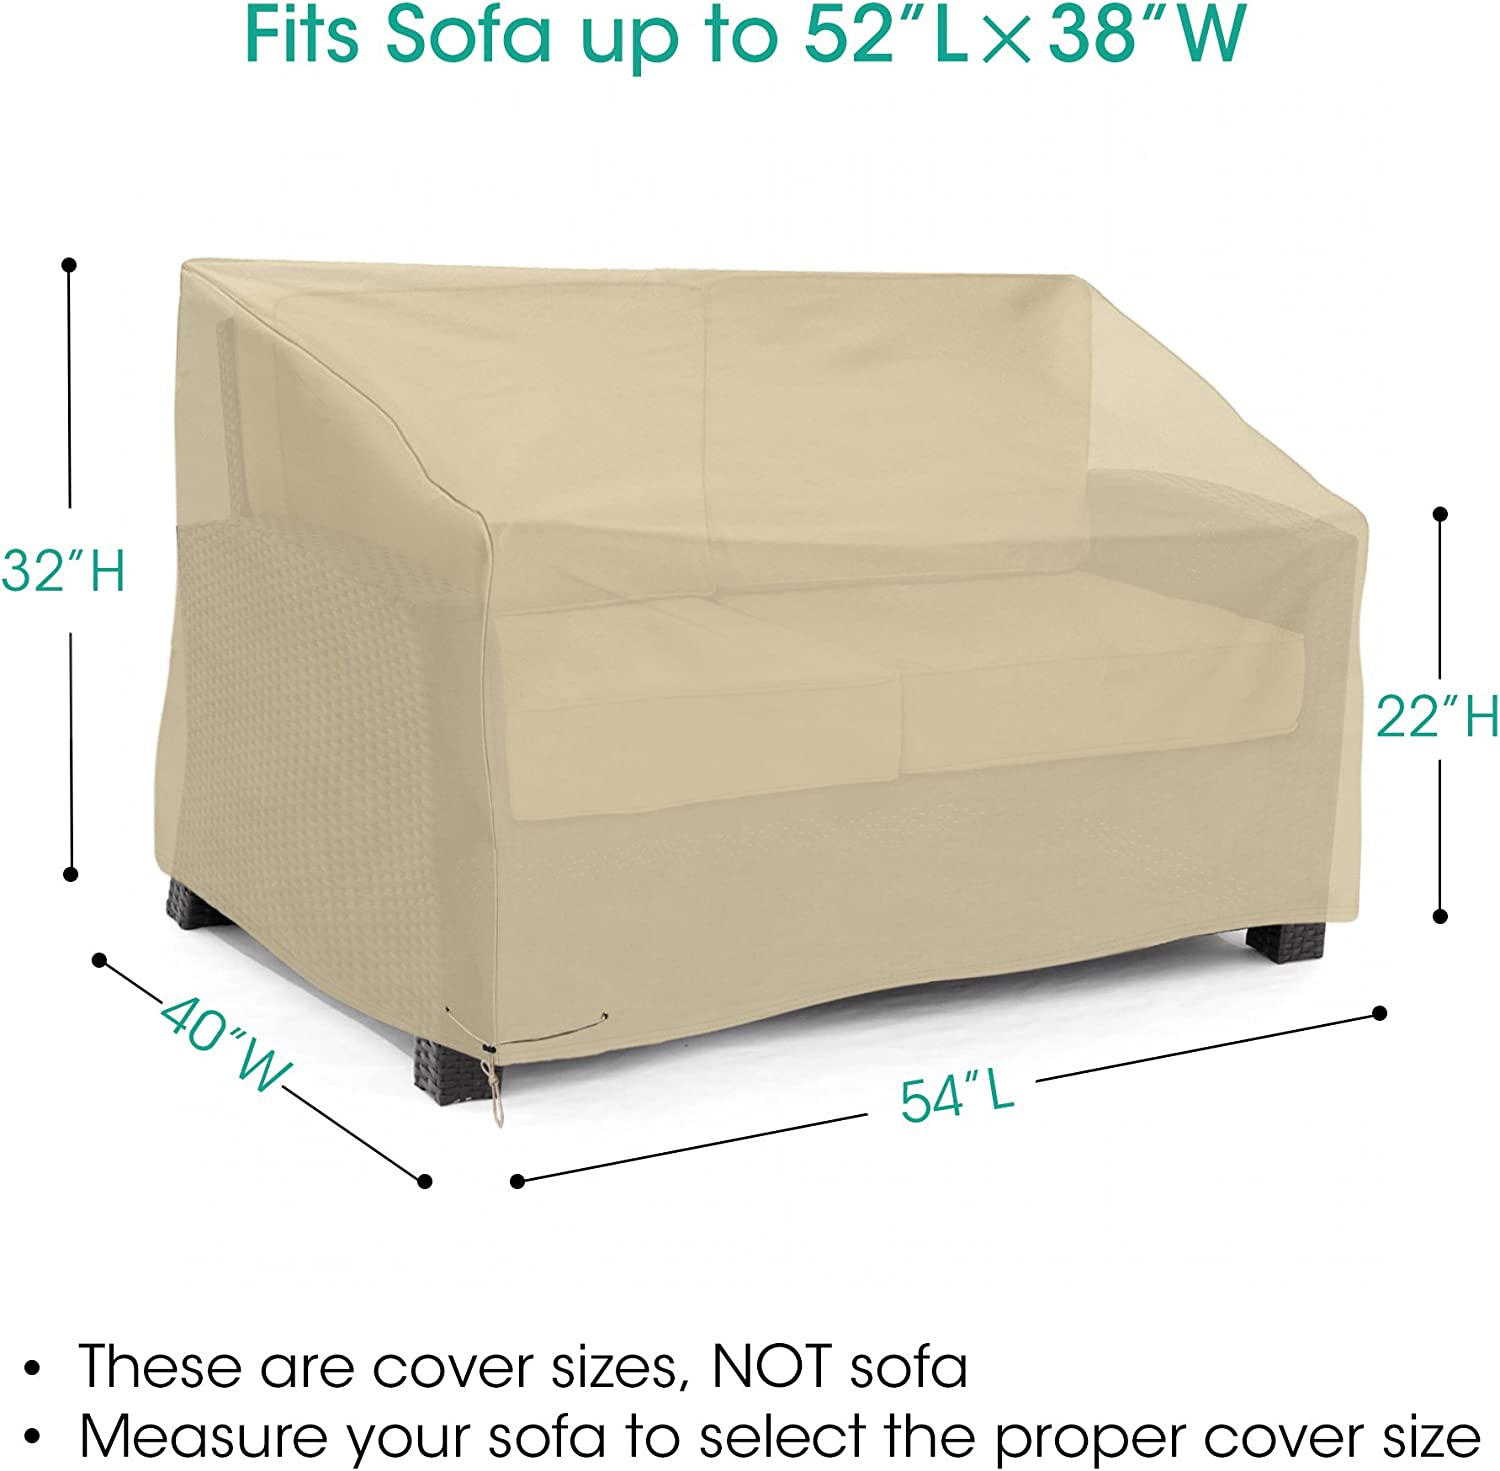 SunPatio Outdoor Deep Sofa Cover, Waterproof Loveseat Furniture Cover 54 L x 40 W x 32 22 H, Beige